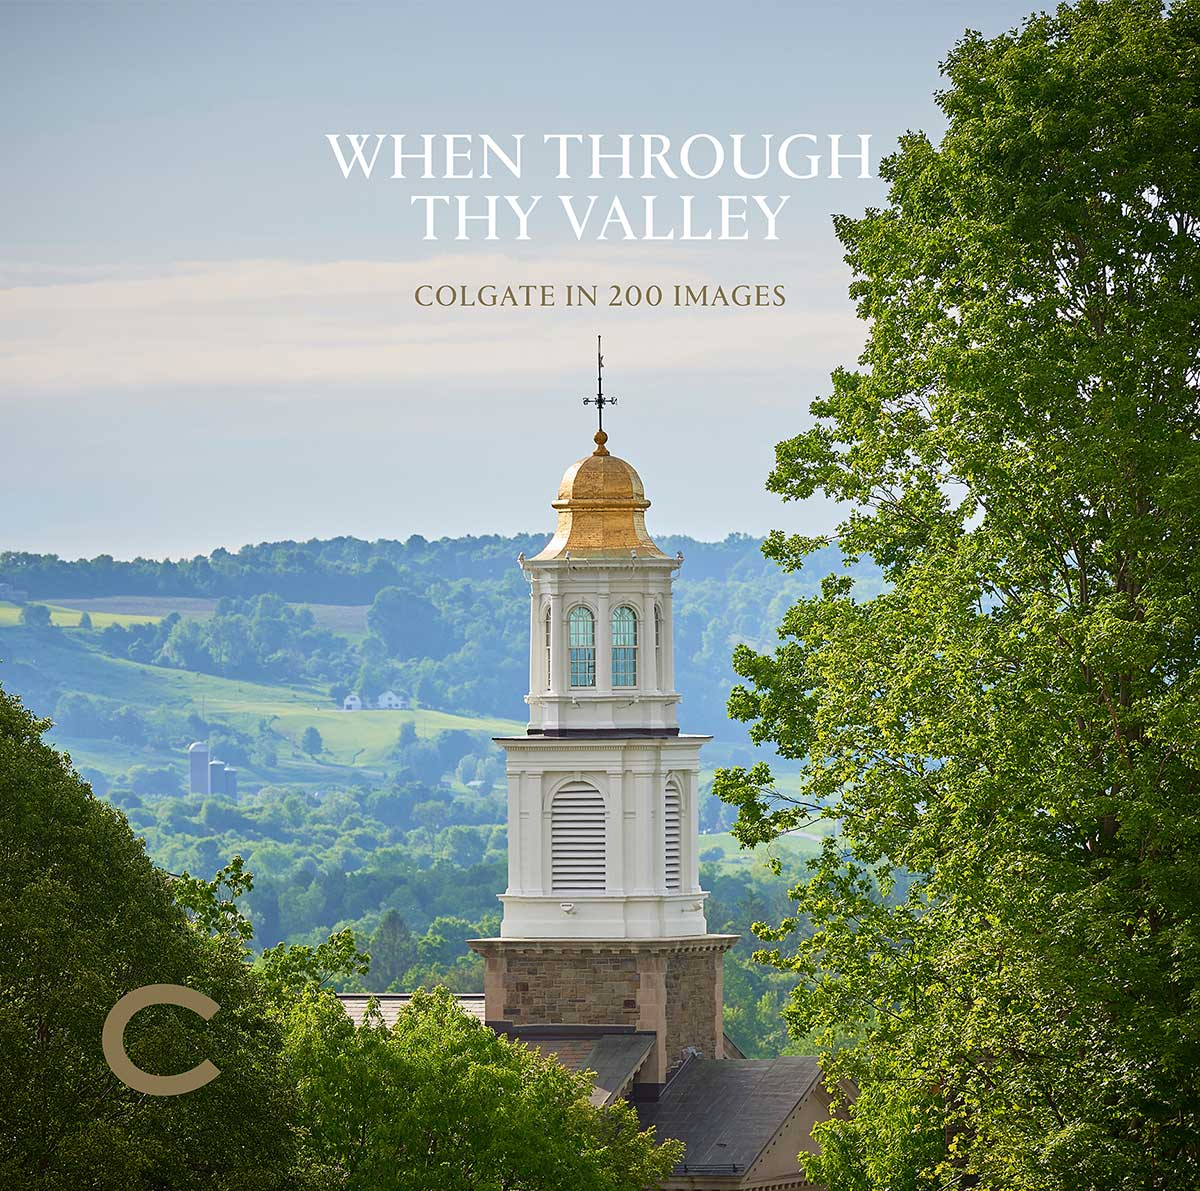 Cover of the book When Through Thy Valley, featuring the Colgate Memorial Chapel's cupola against the Chenango Valley in the background